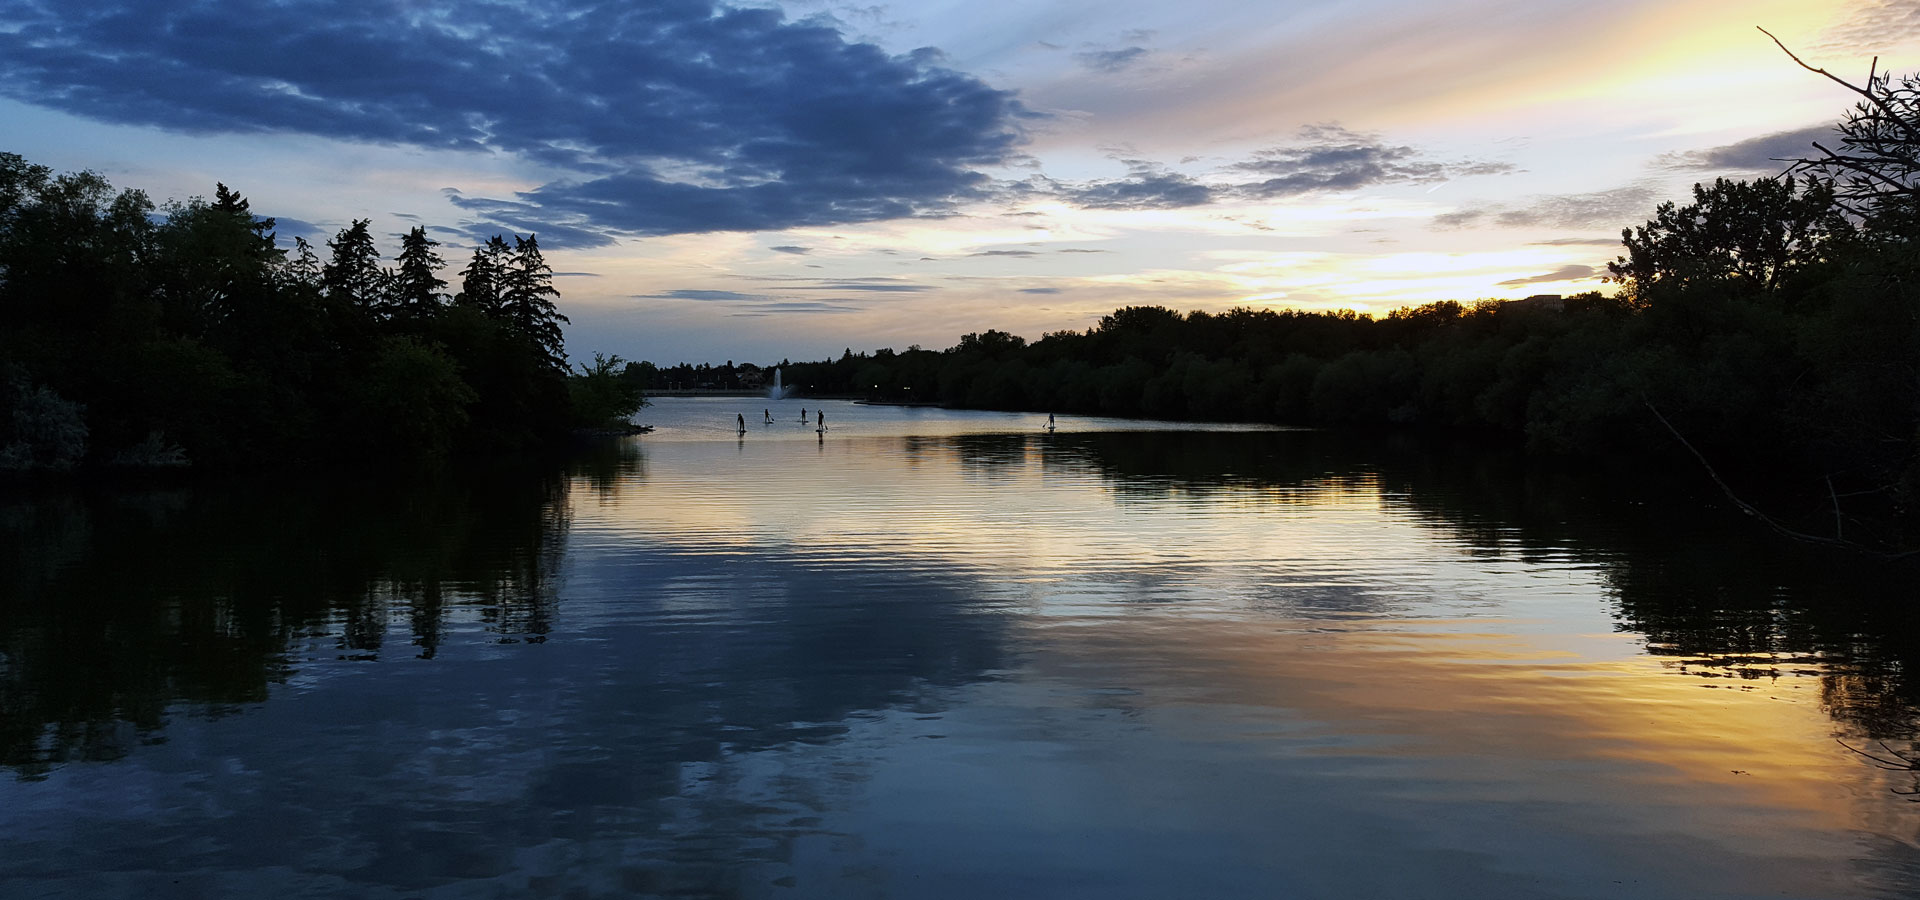 Wascana Lake during sunset